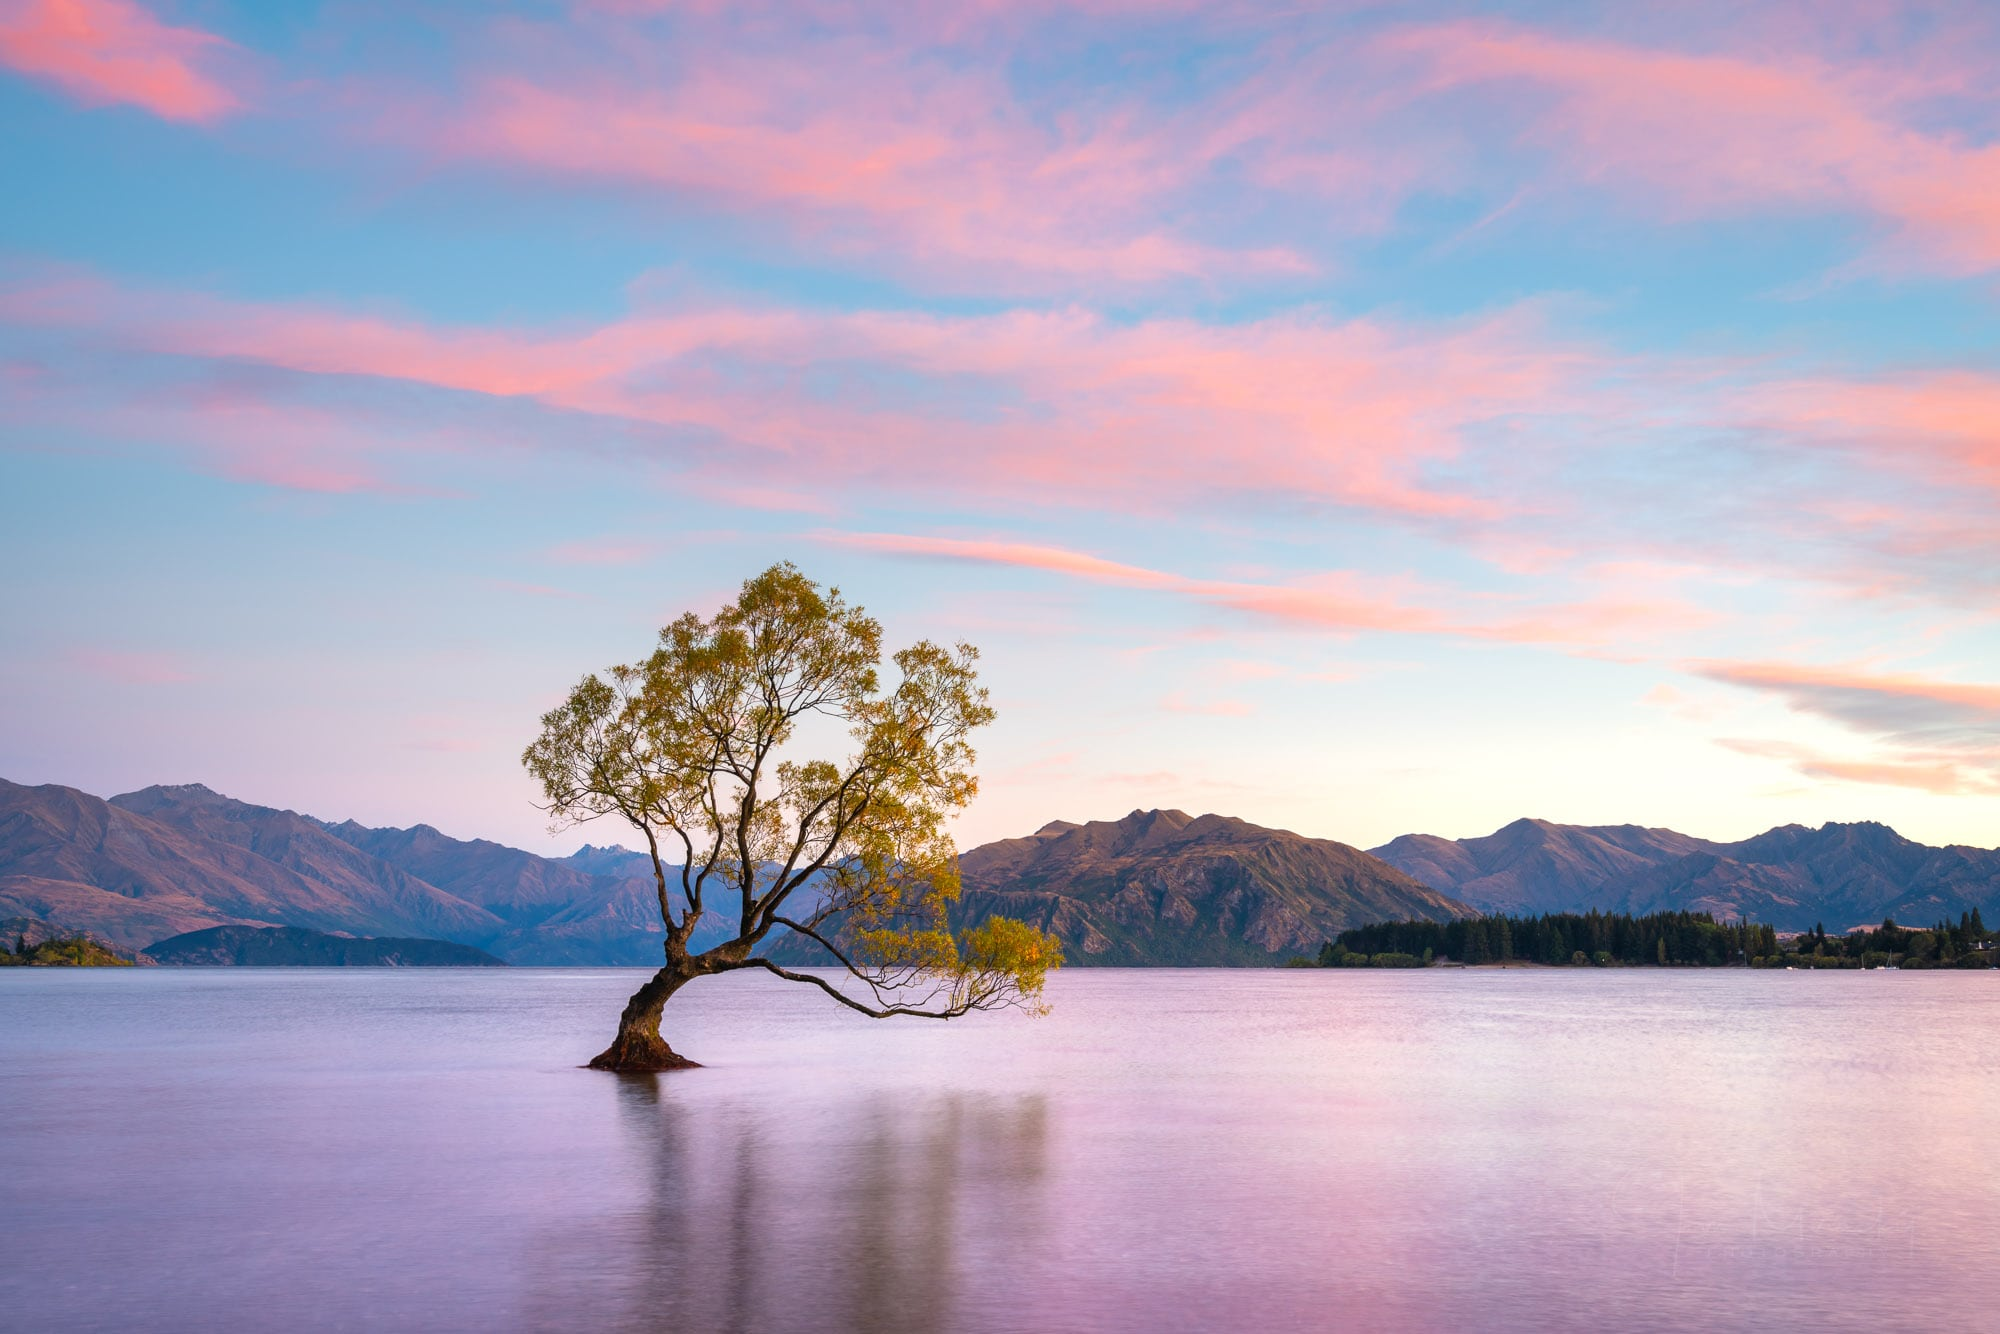 Wanaka Tree at sunrise, New Zealand